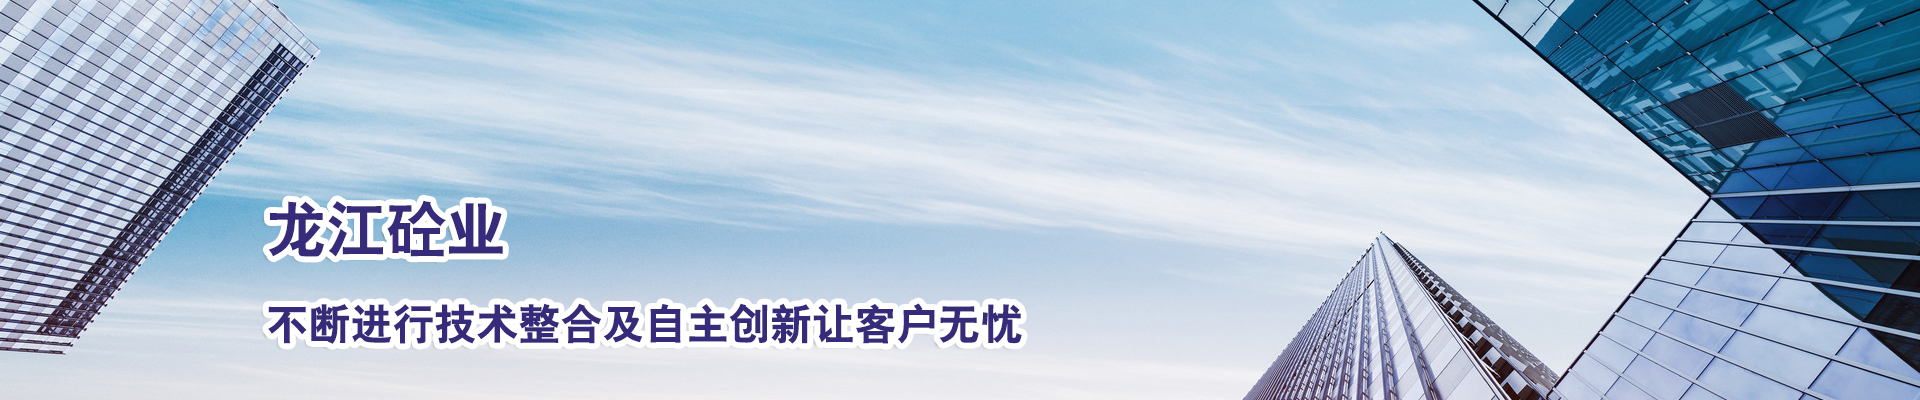 http://www.jsyclj.cn/data/images/slide/20191010170205_968.jpg